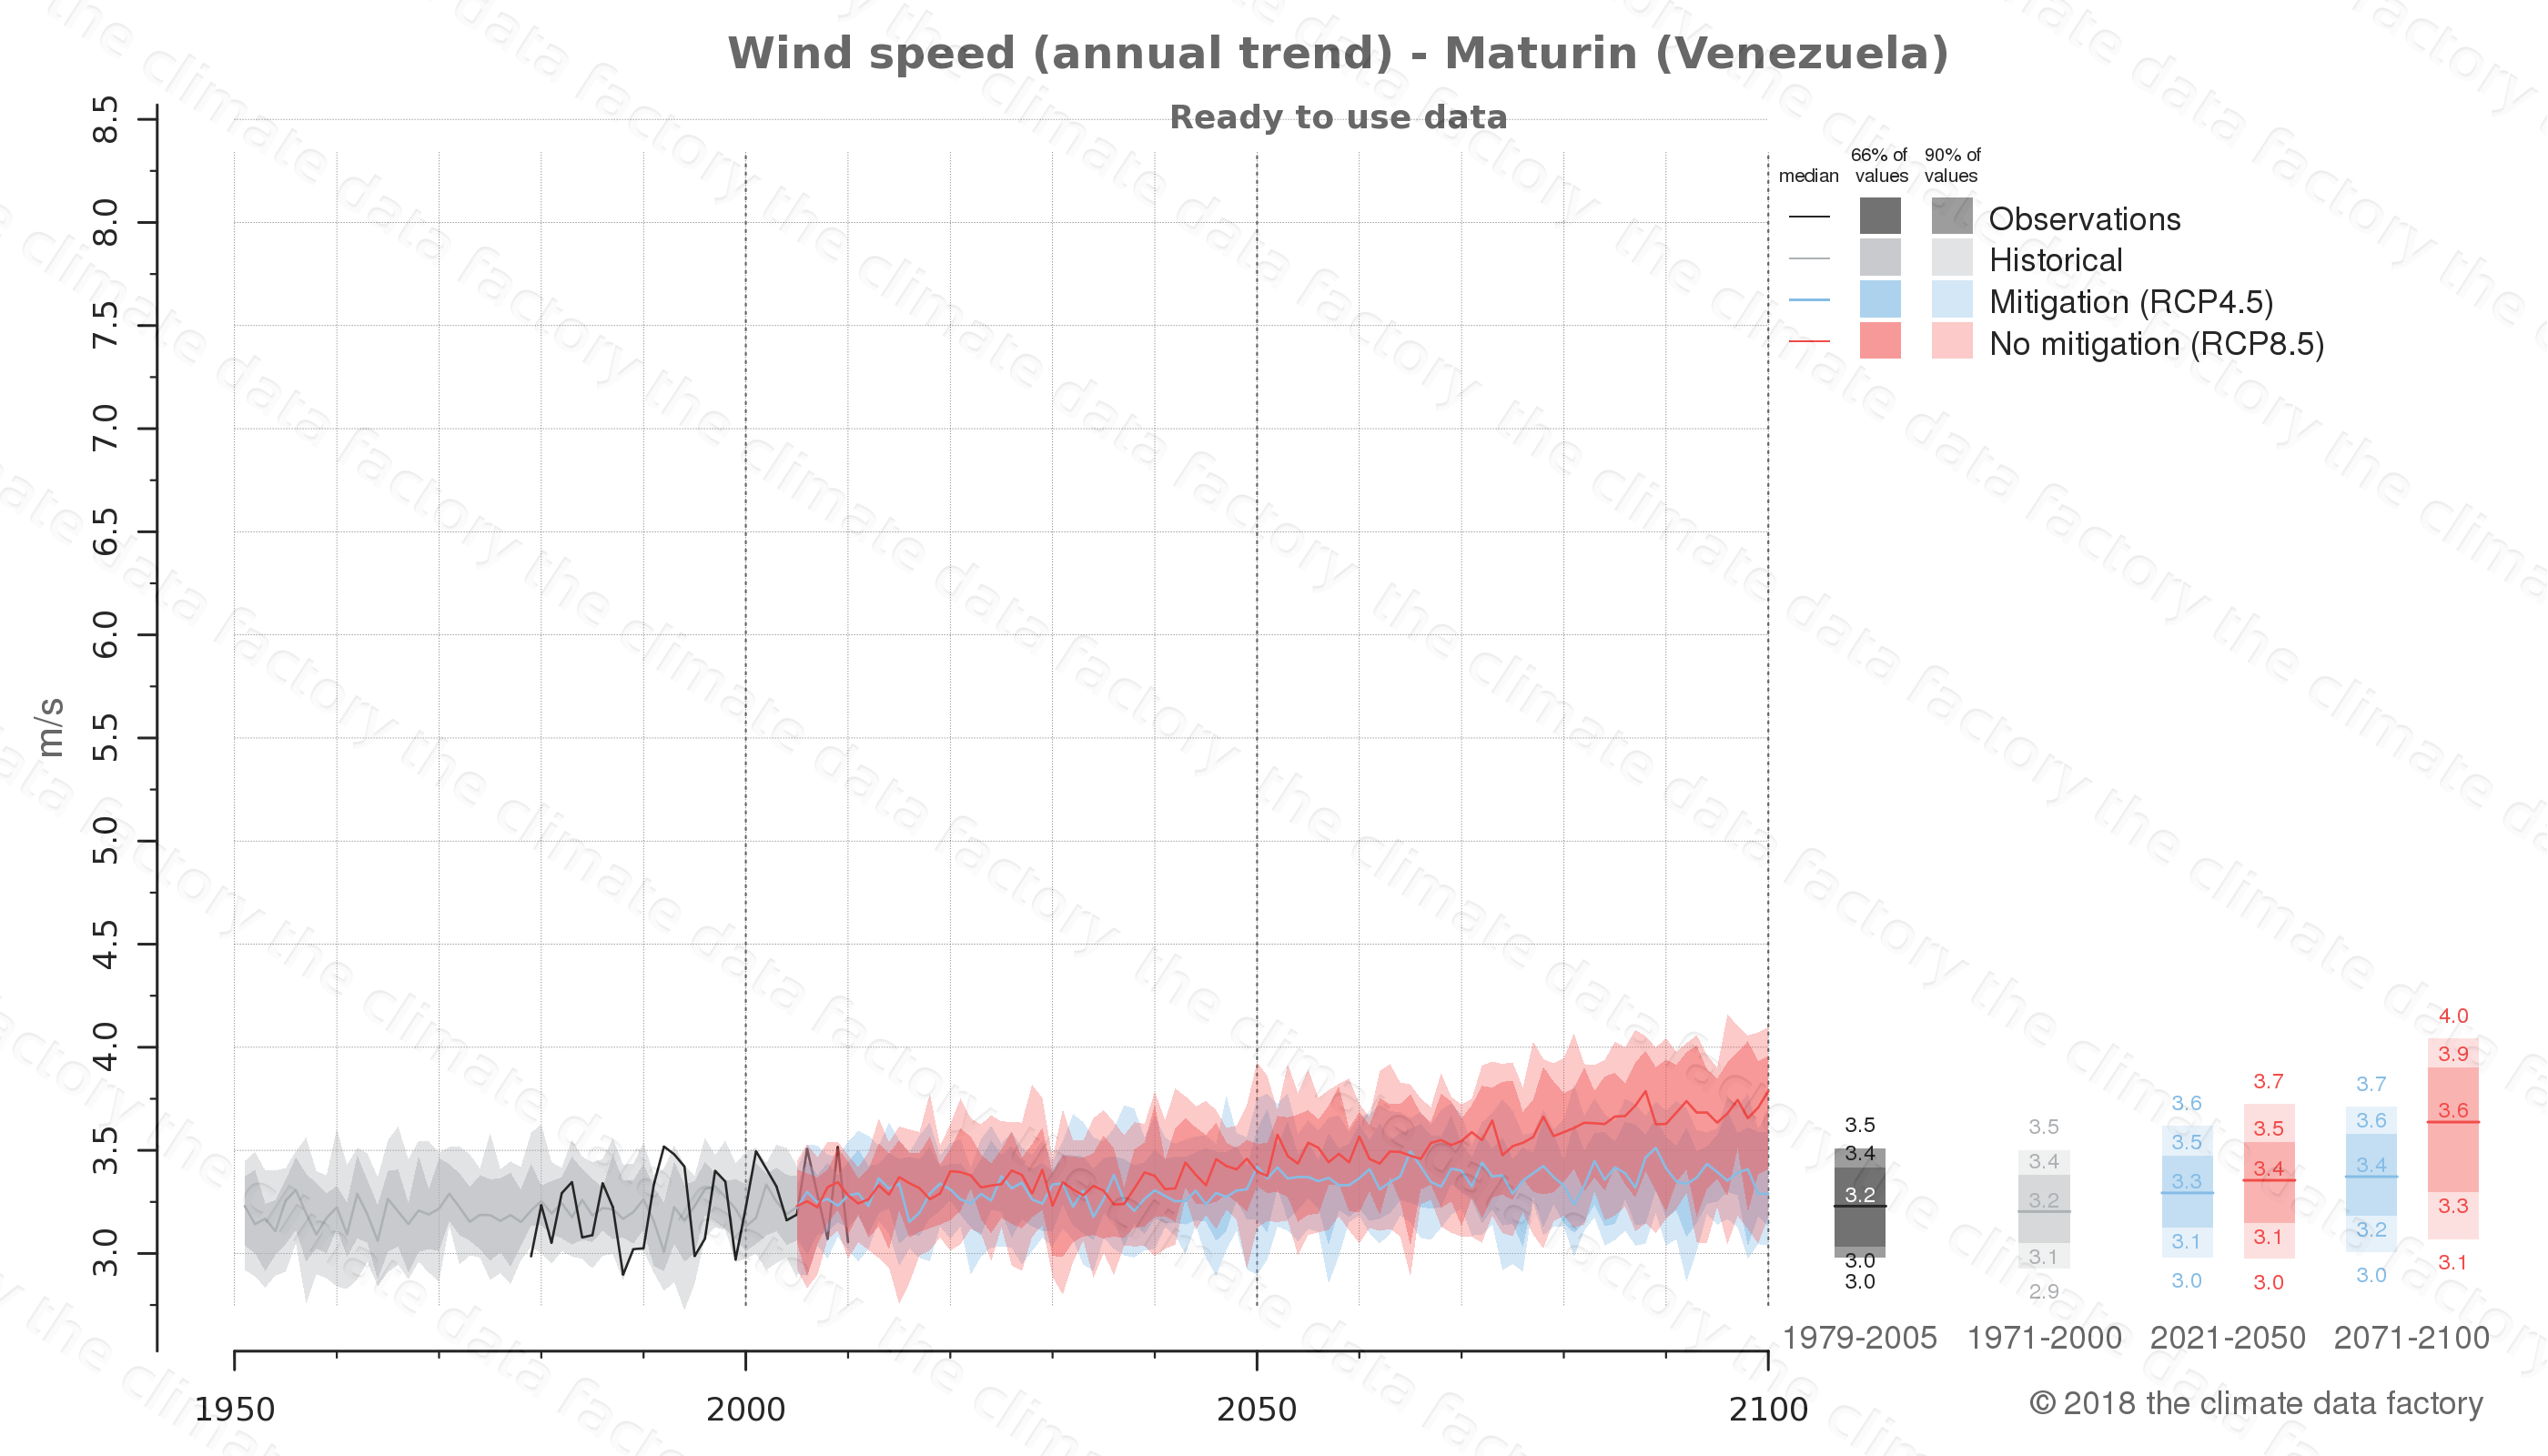 climate change data policy adaptation climate graph city data wind-speed maturin venezuela